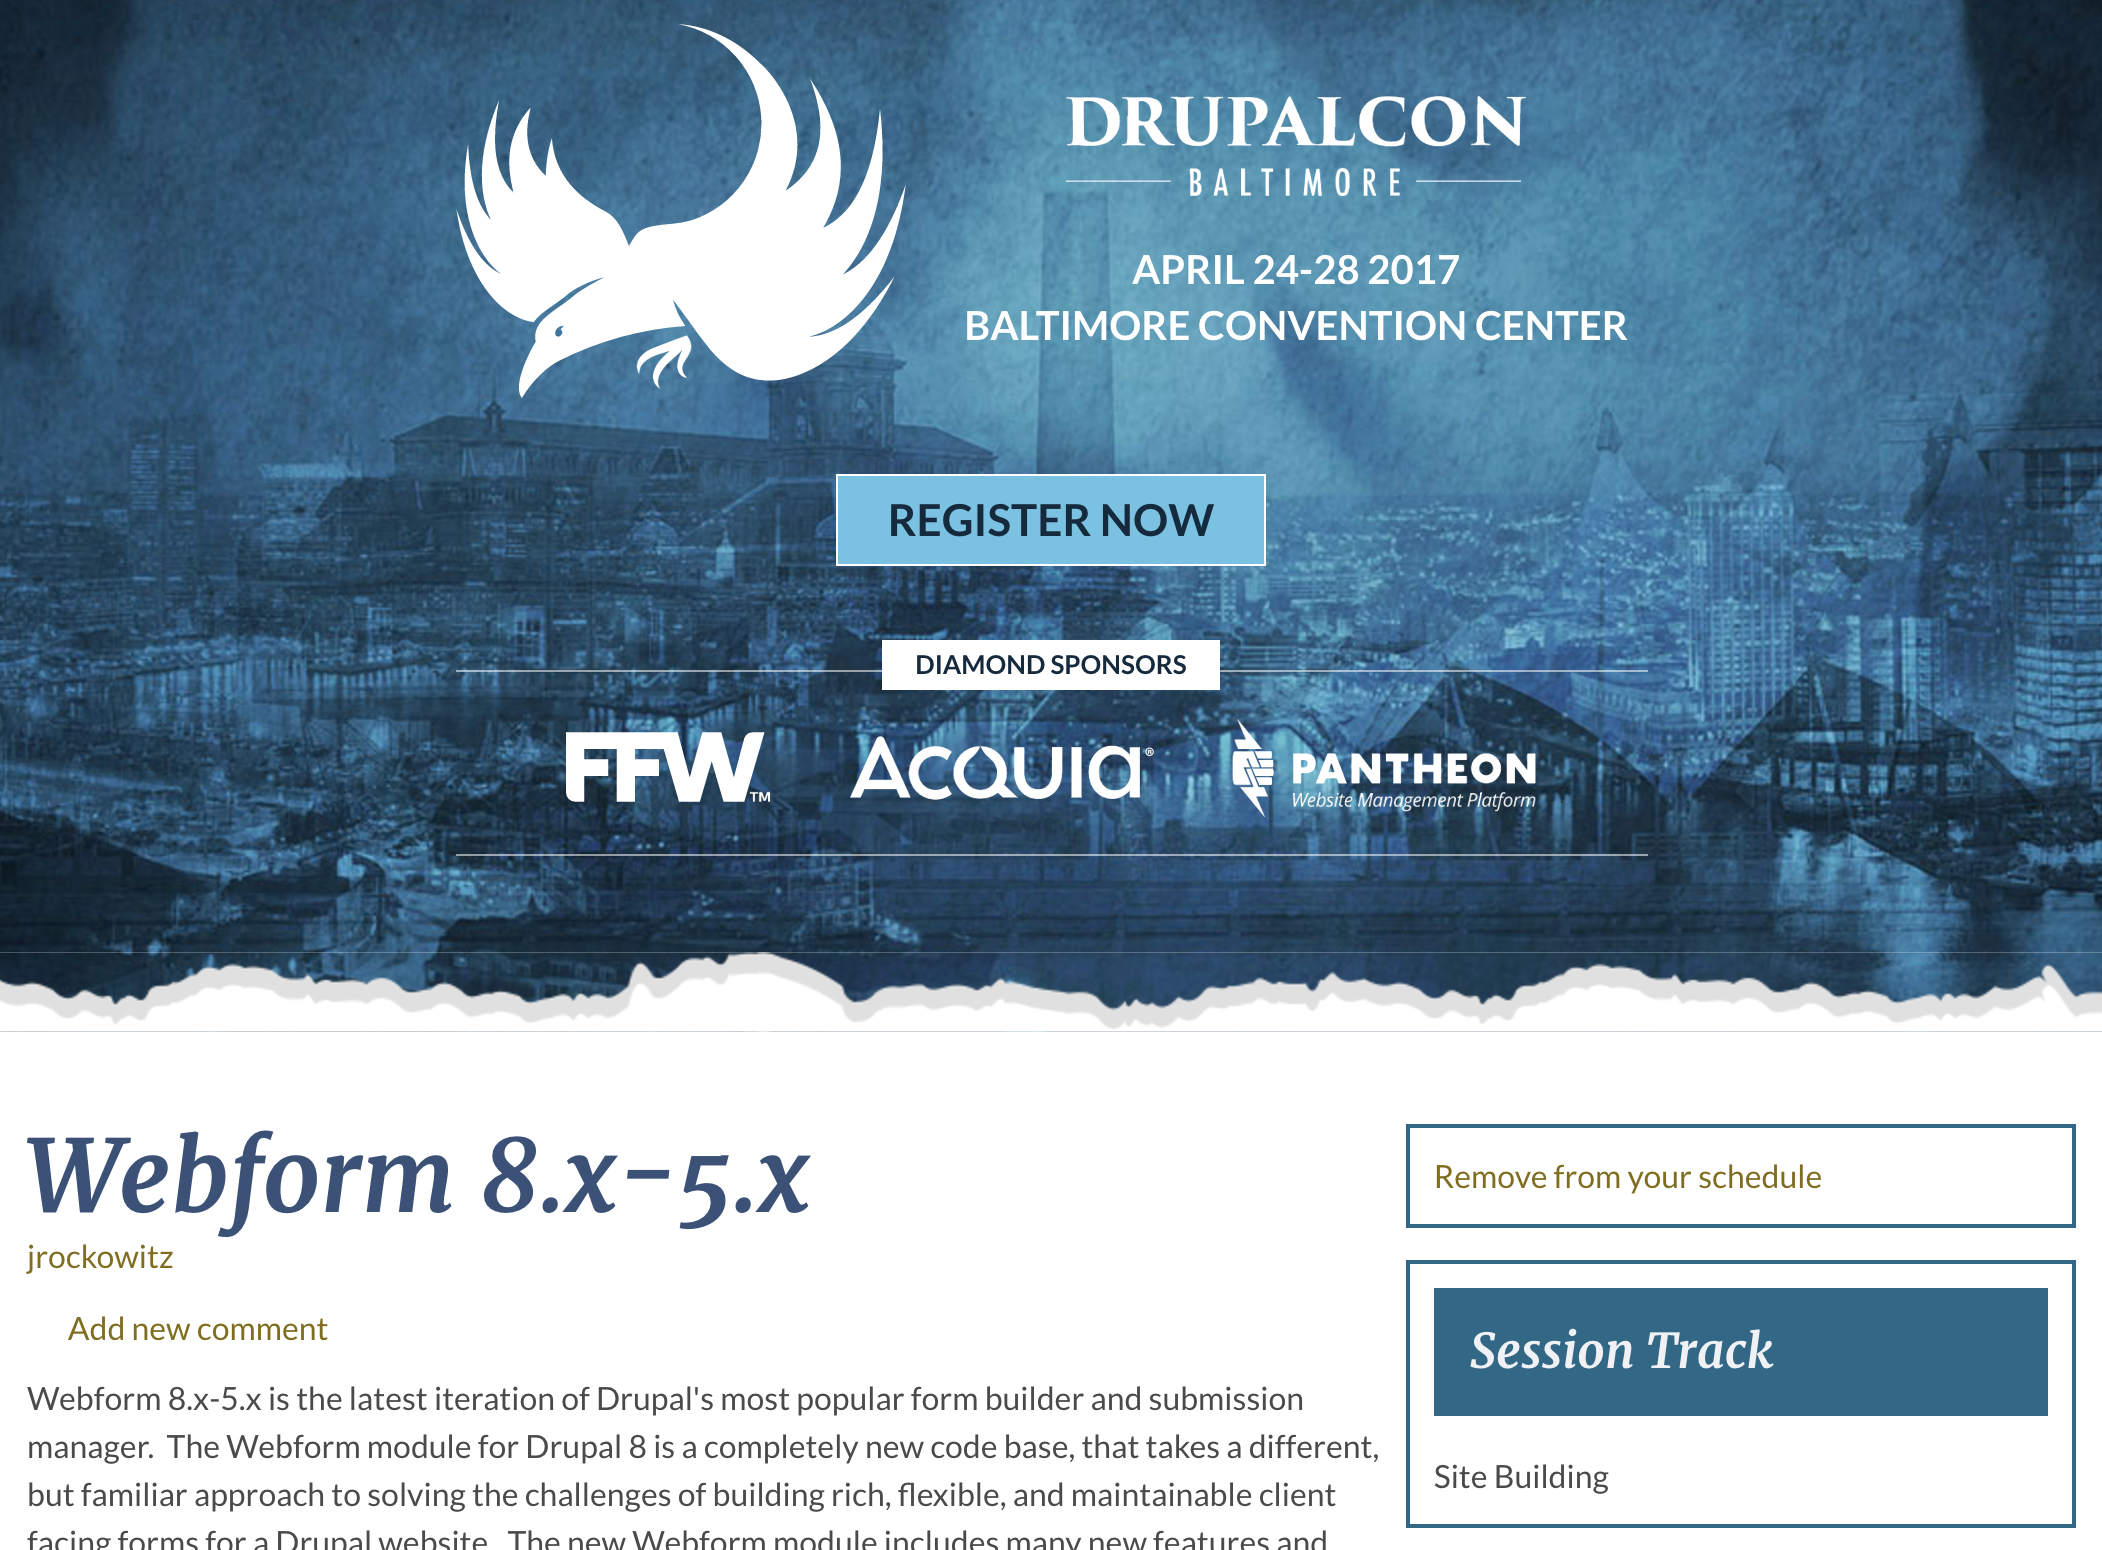 Webform session - DrupalCon Baltimore 2017